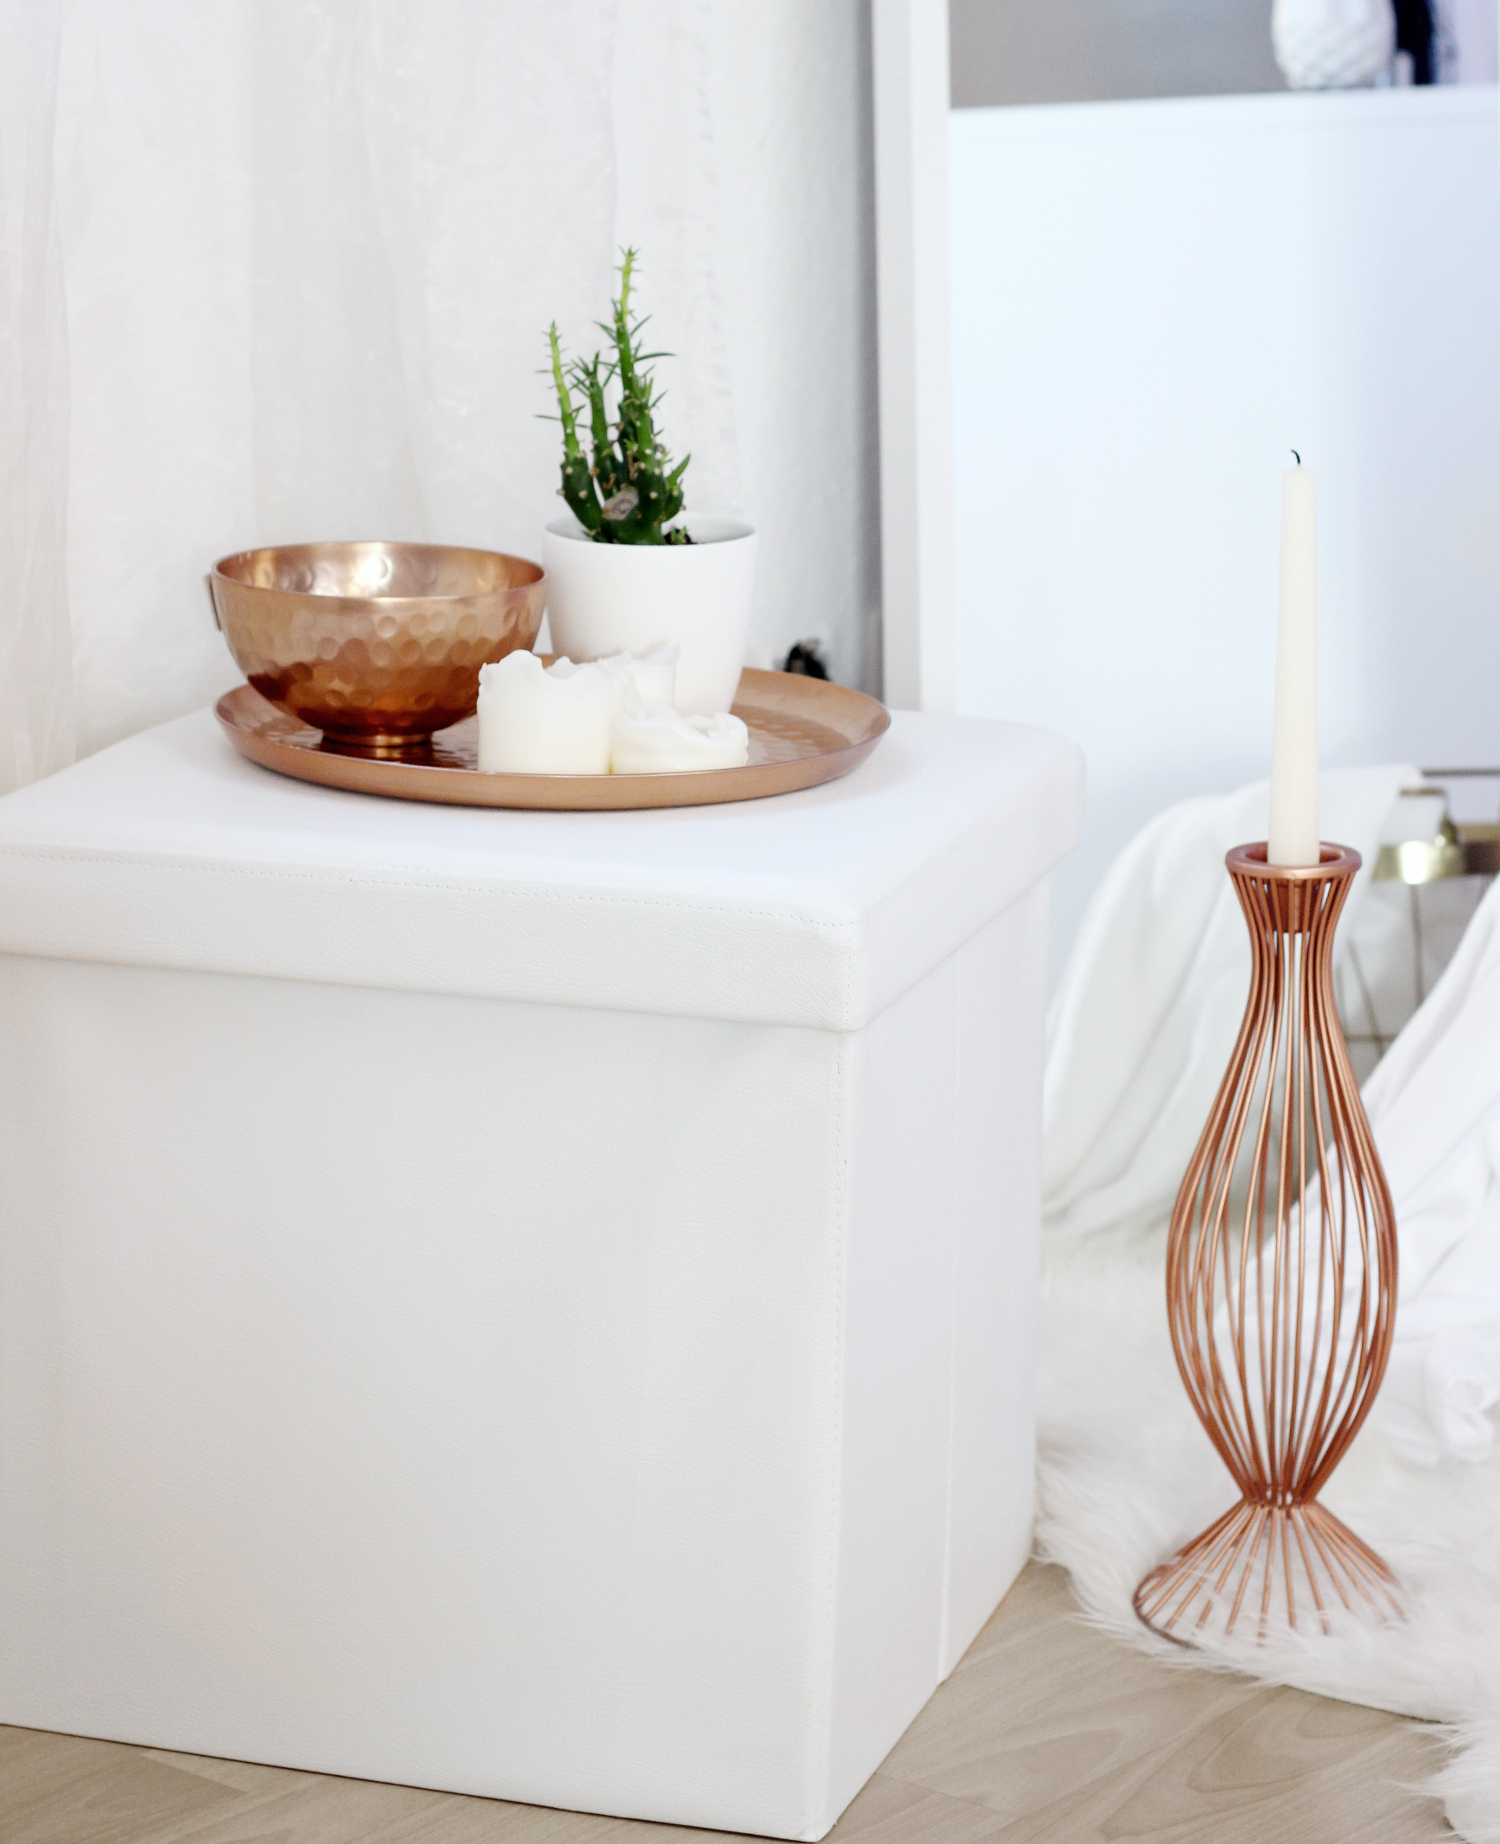 bezauberndenana-fashionblog-februar-favoriten-kupfer-deko-interior-h&m-home-ikea